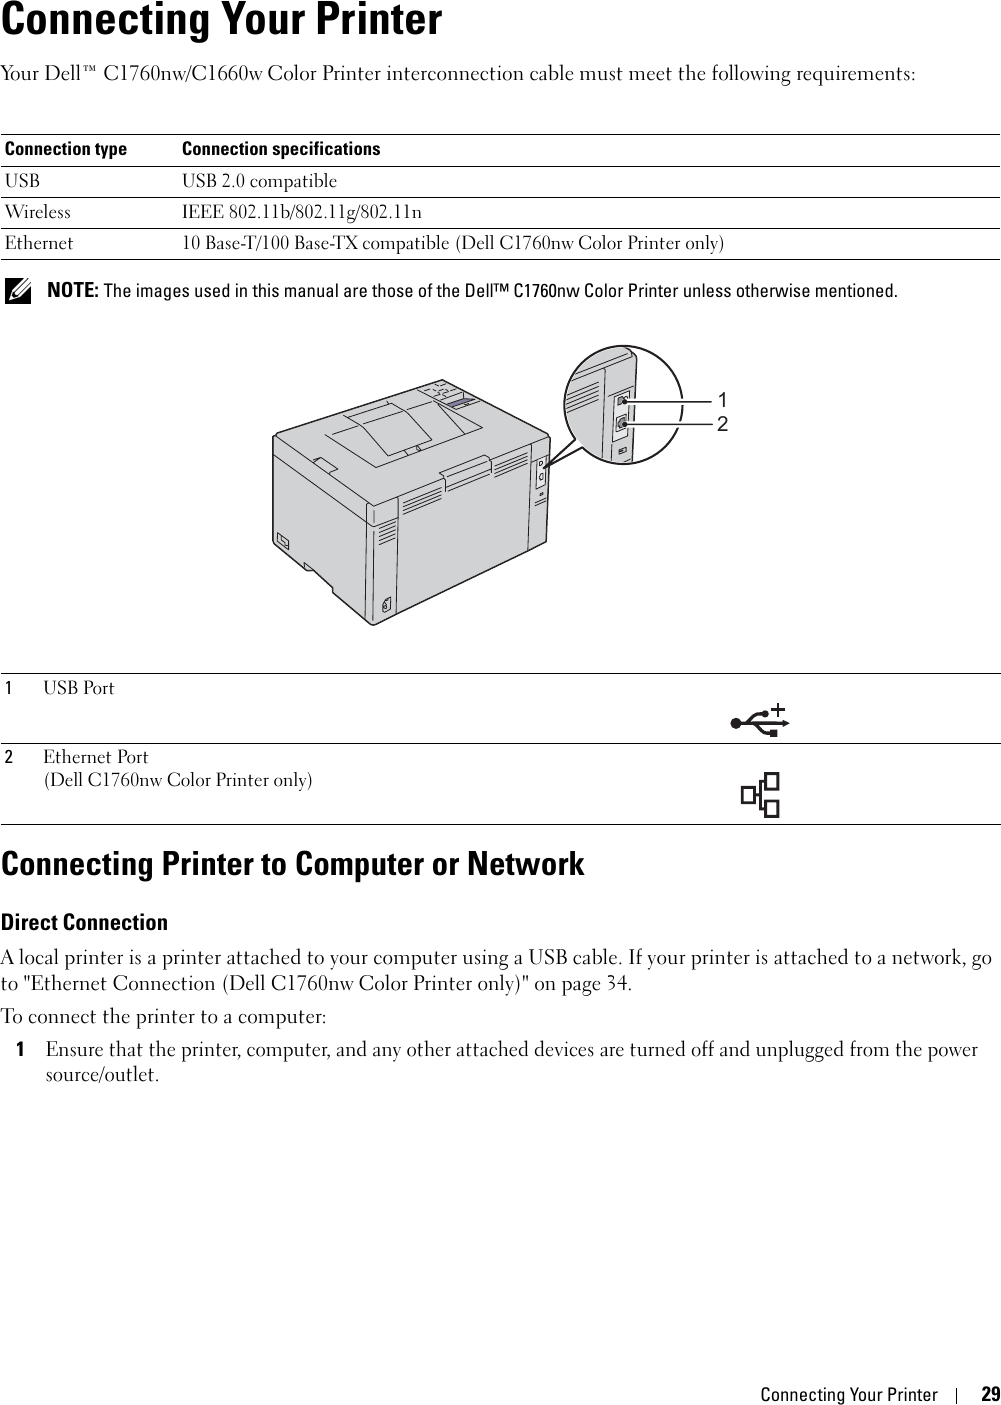 Dell C1760Nw Color Laser Printer Users Manual User's Guide